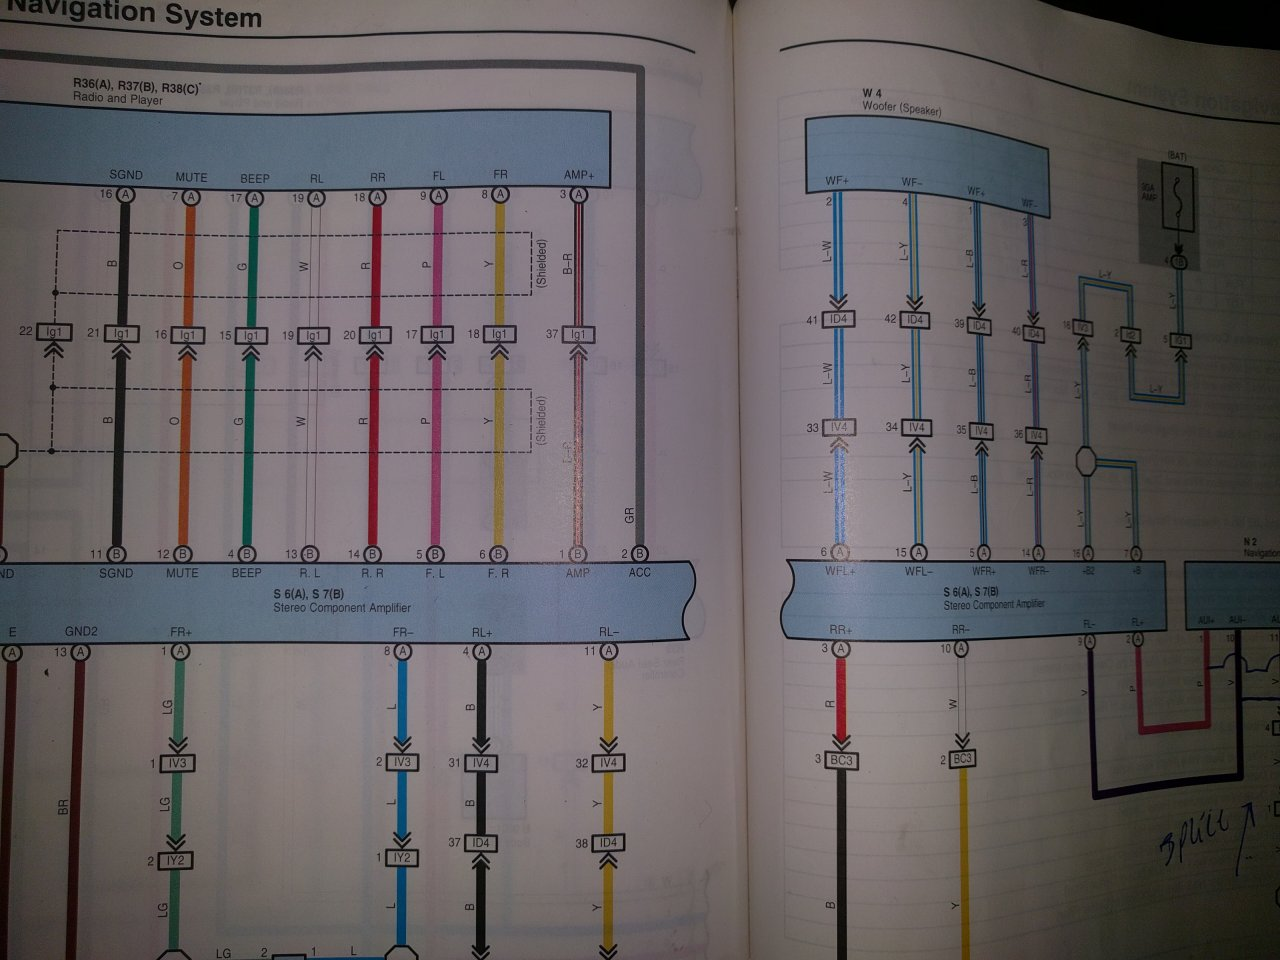 Stereo Wiring Diagram For 03 100 Series